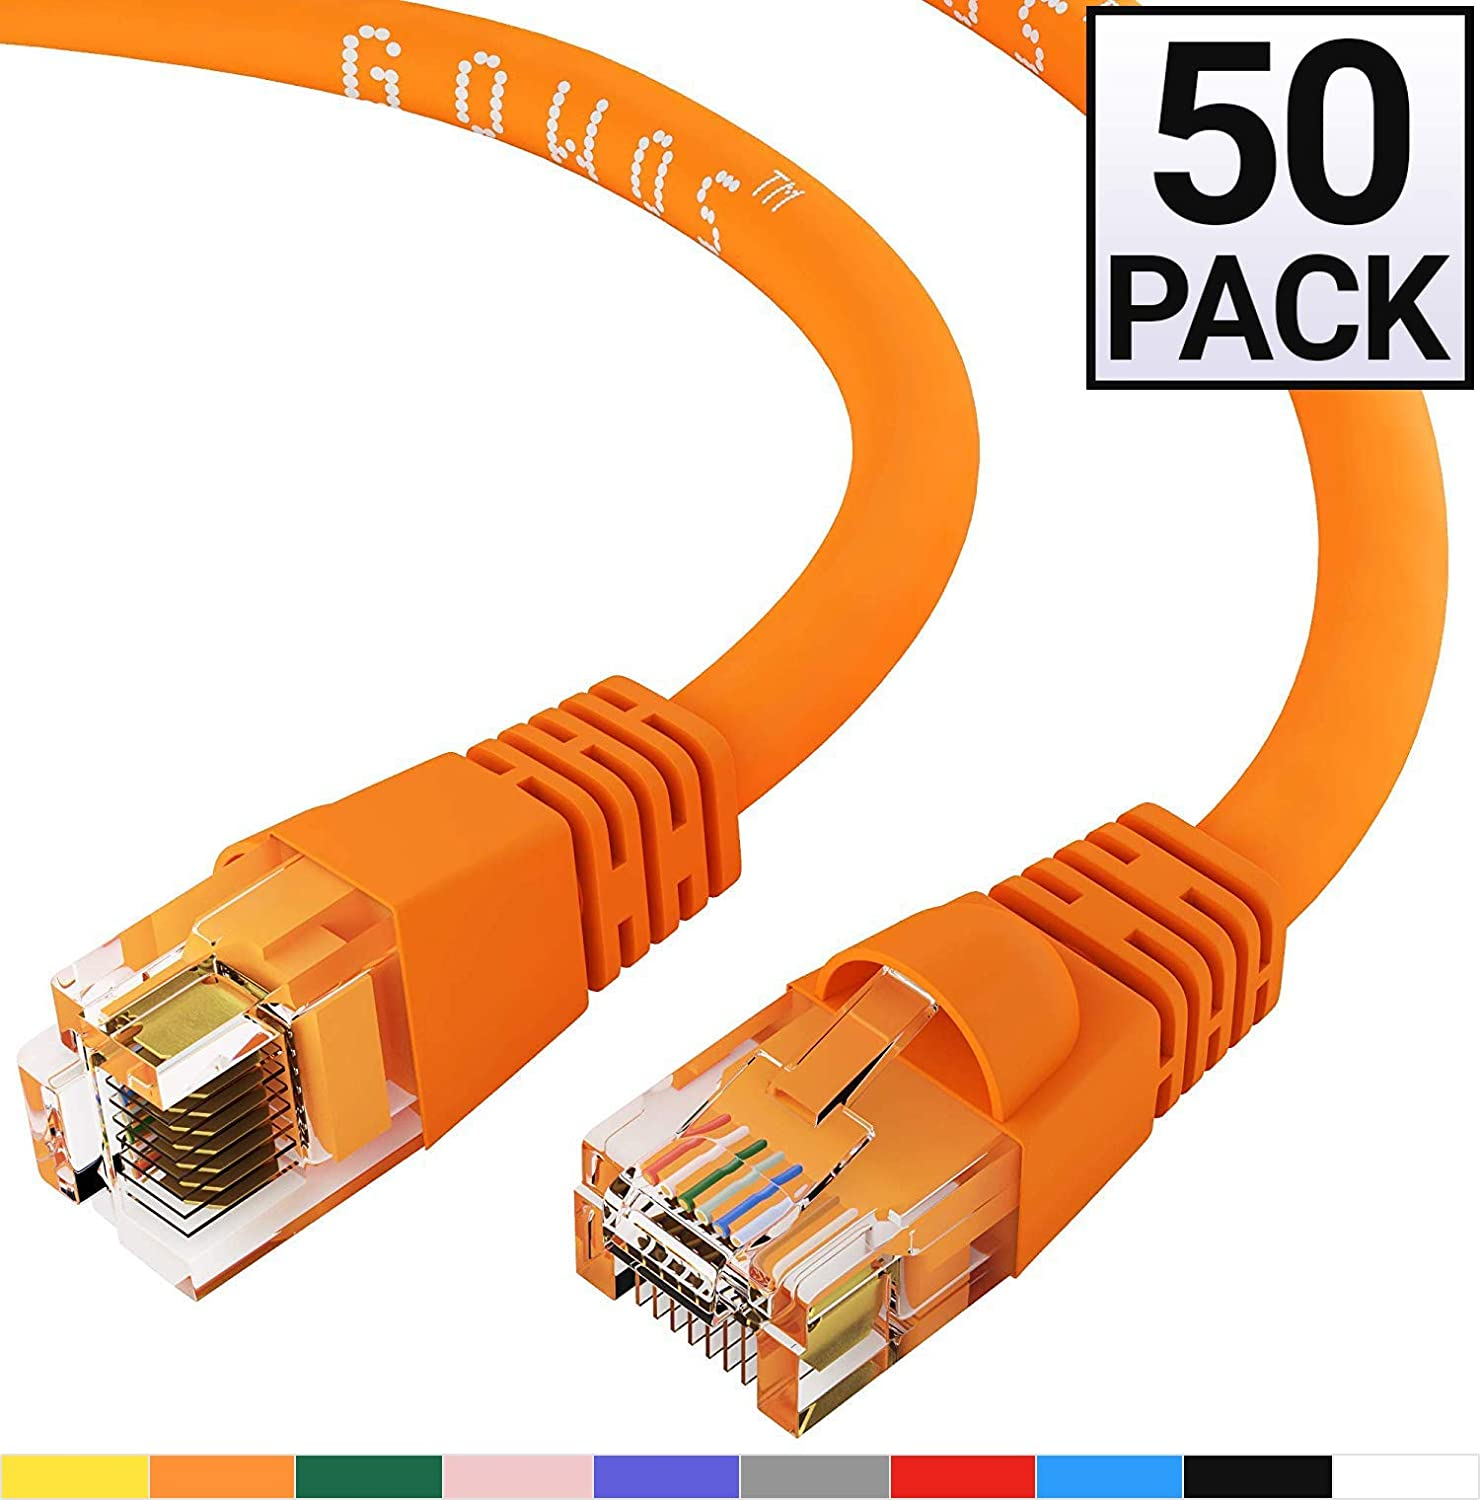 GOWOS 50-Pack, Cat6 Ethernet Cable (2 Feet - Orange) UTP - Computer Network Cable with Snagless Connector - RJ45 10Gbps High Speed LAN Internet Patch Cord - Available in 28 Lengths and 10 Colors